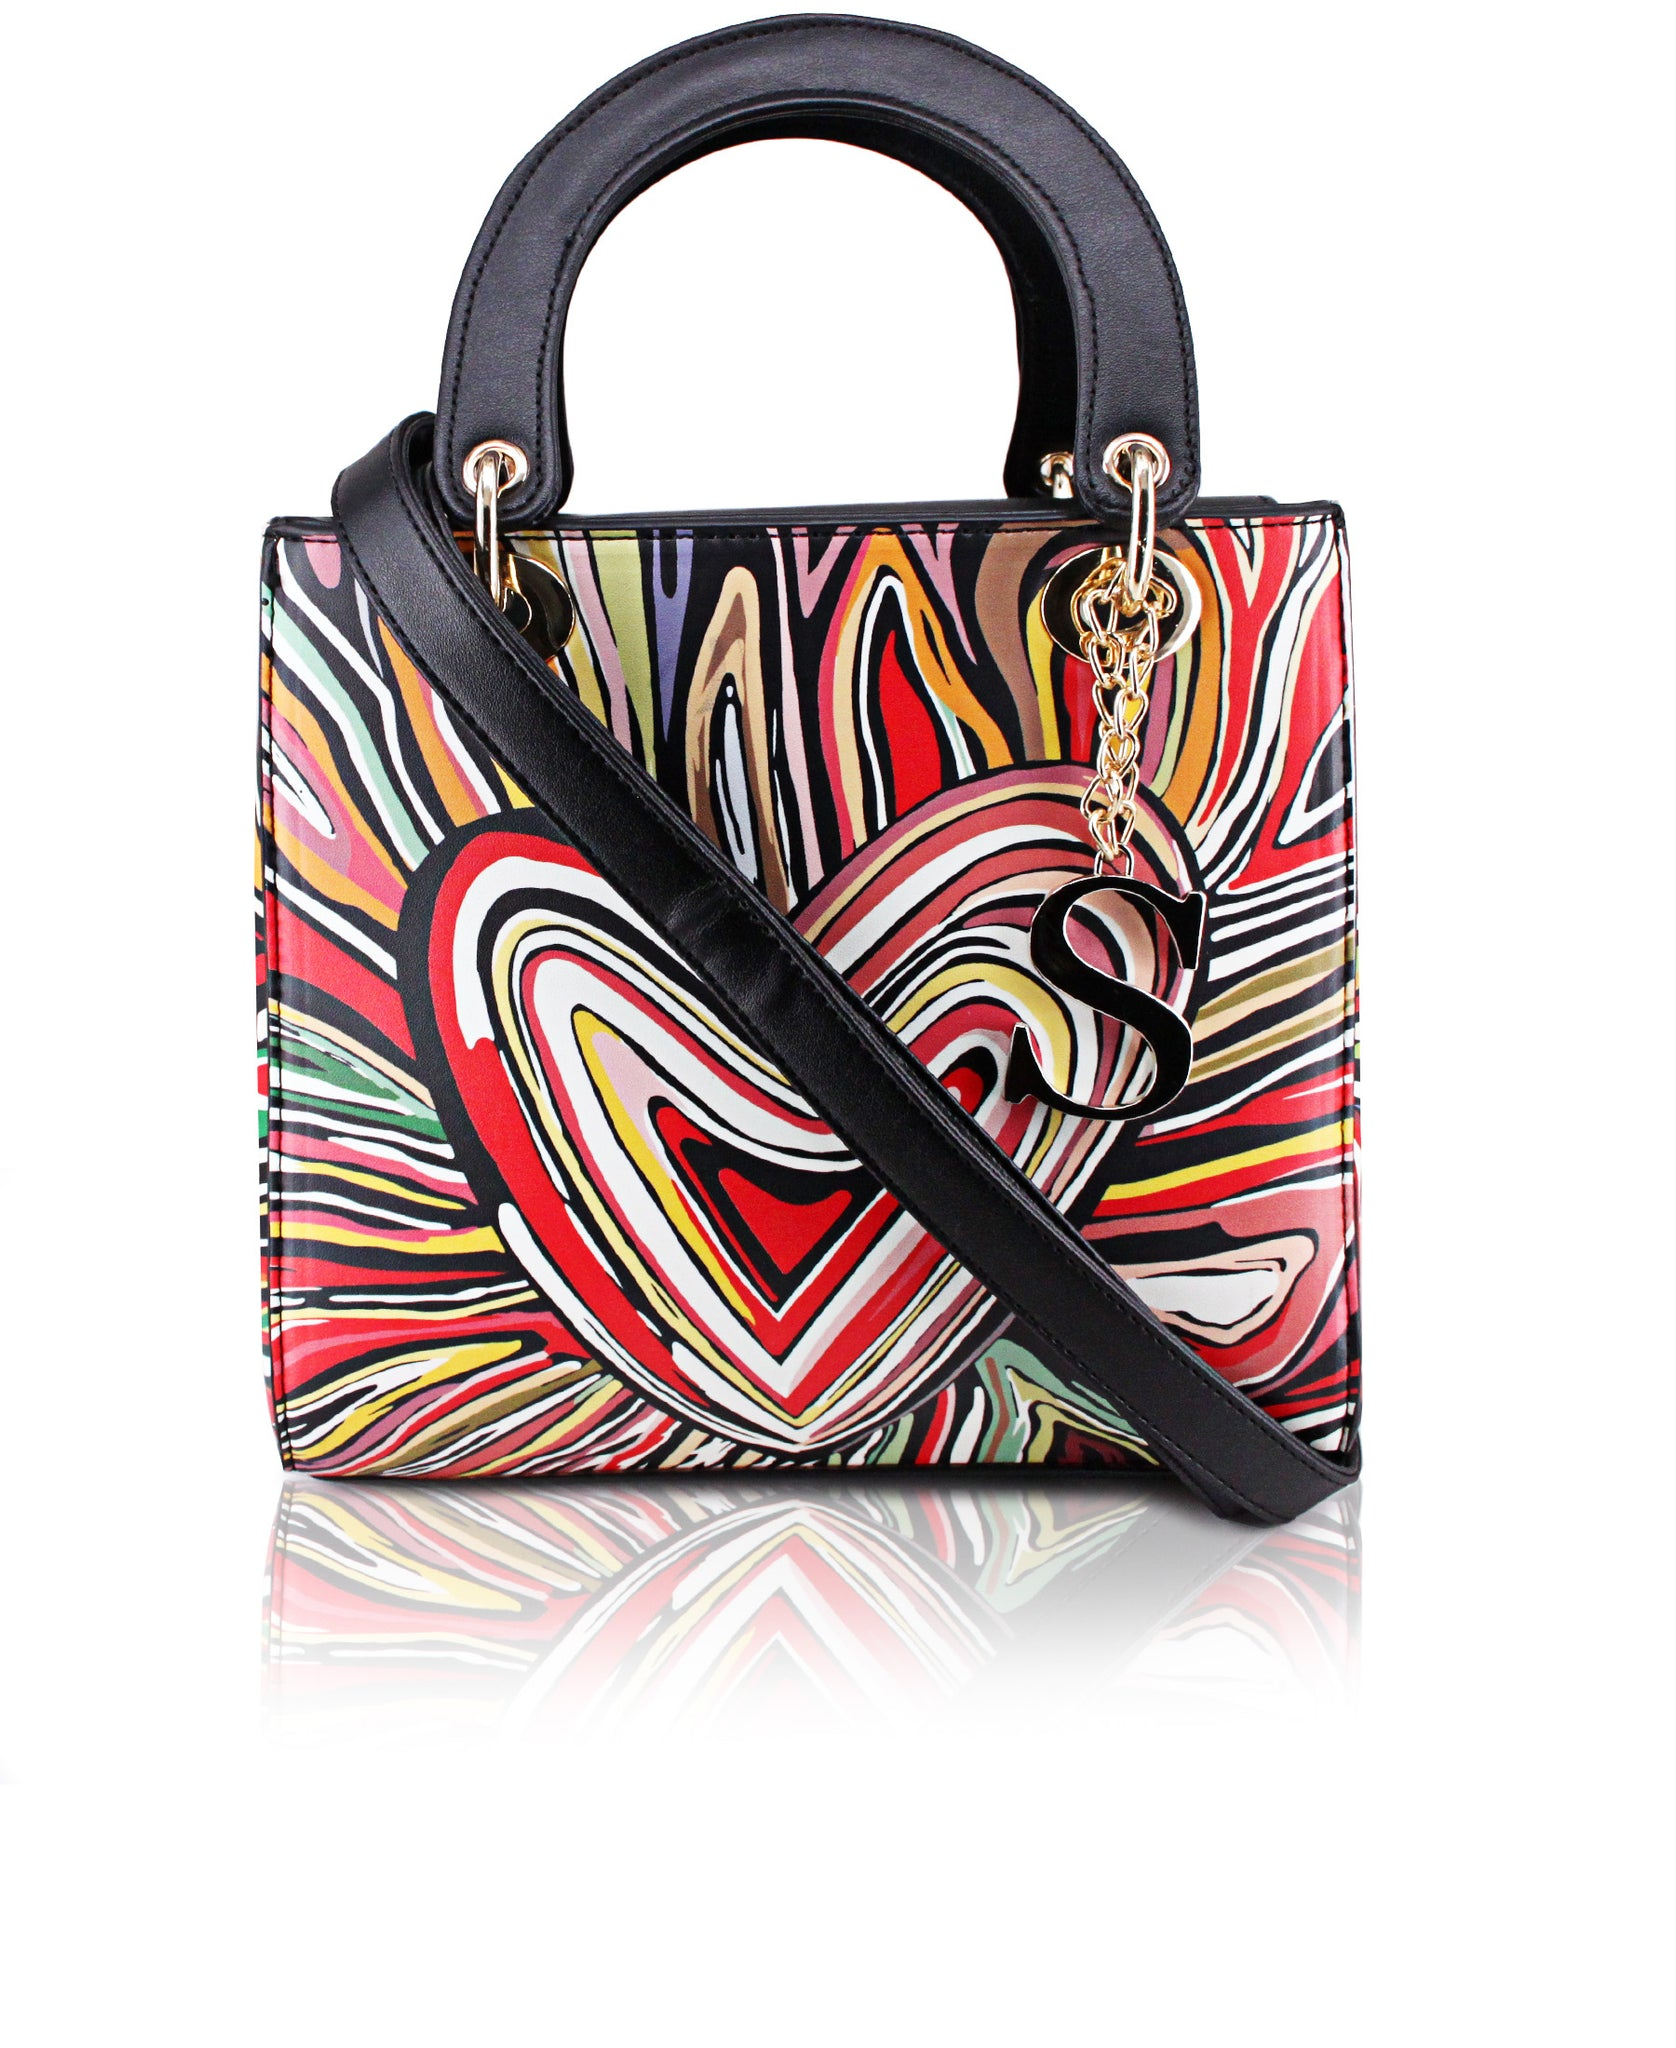 Abstract Tote Bag - Multi